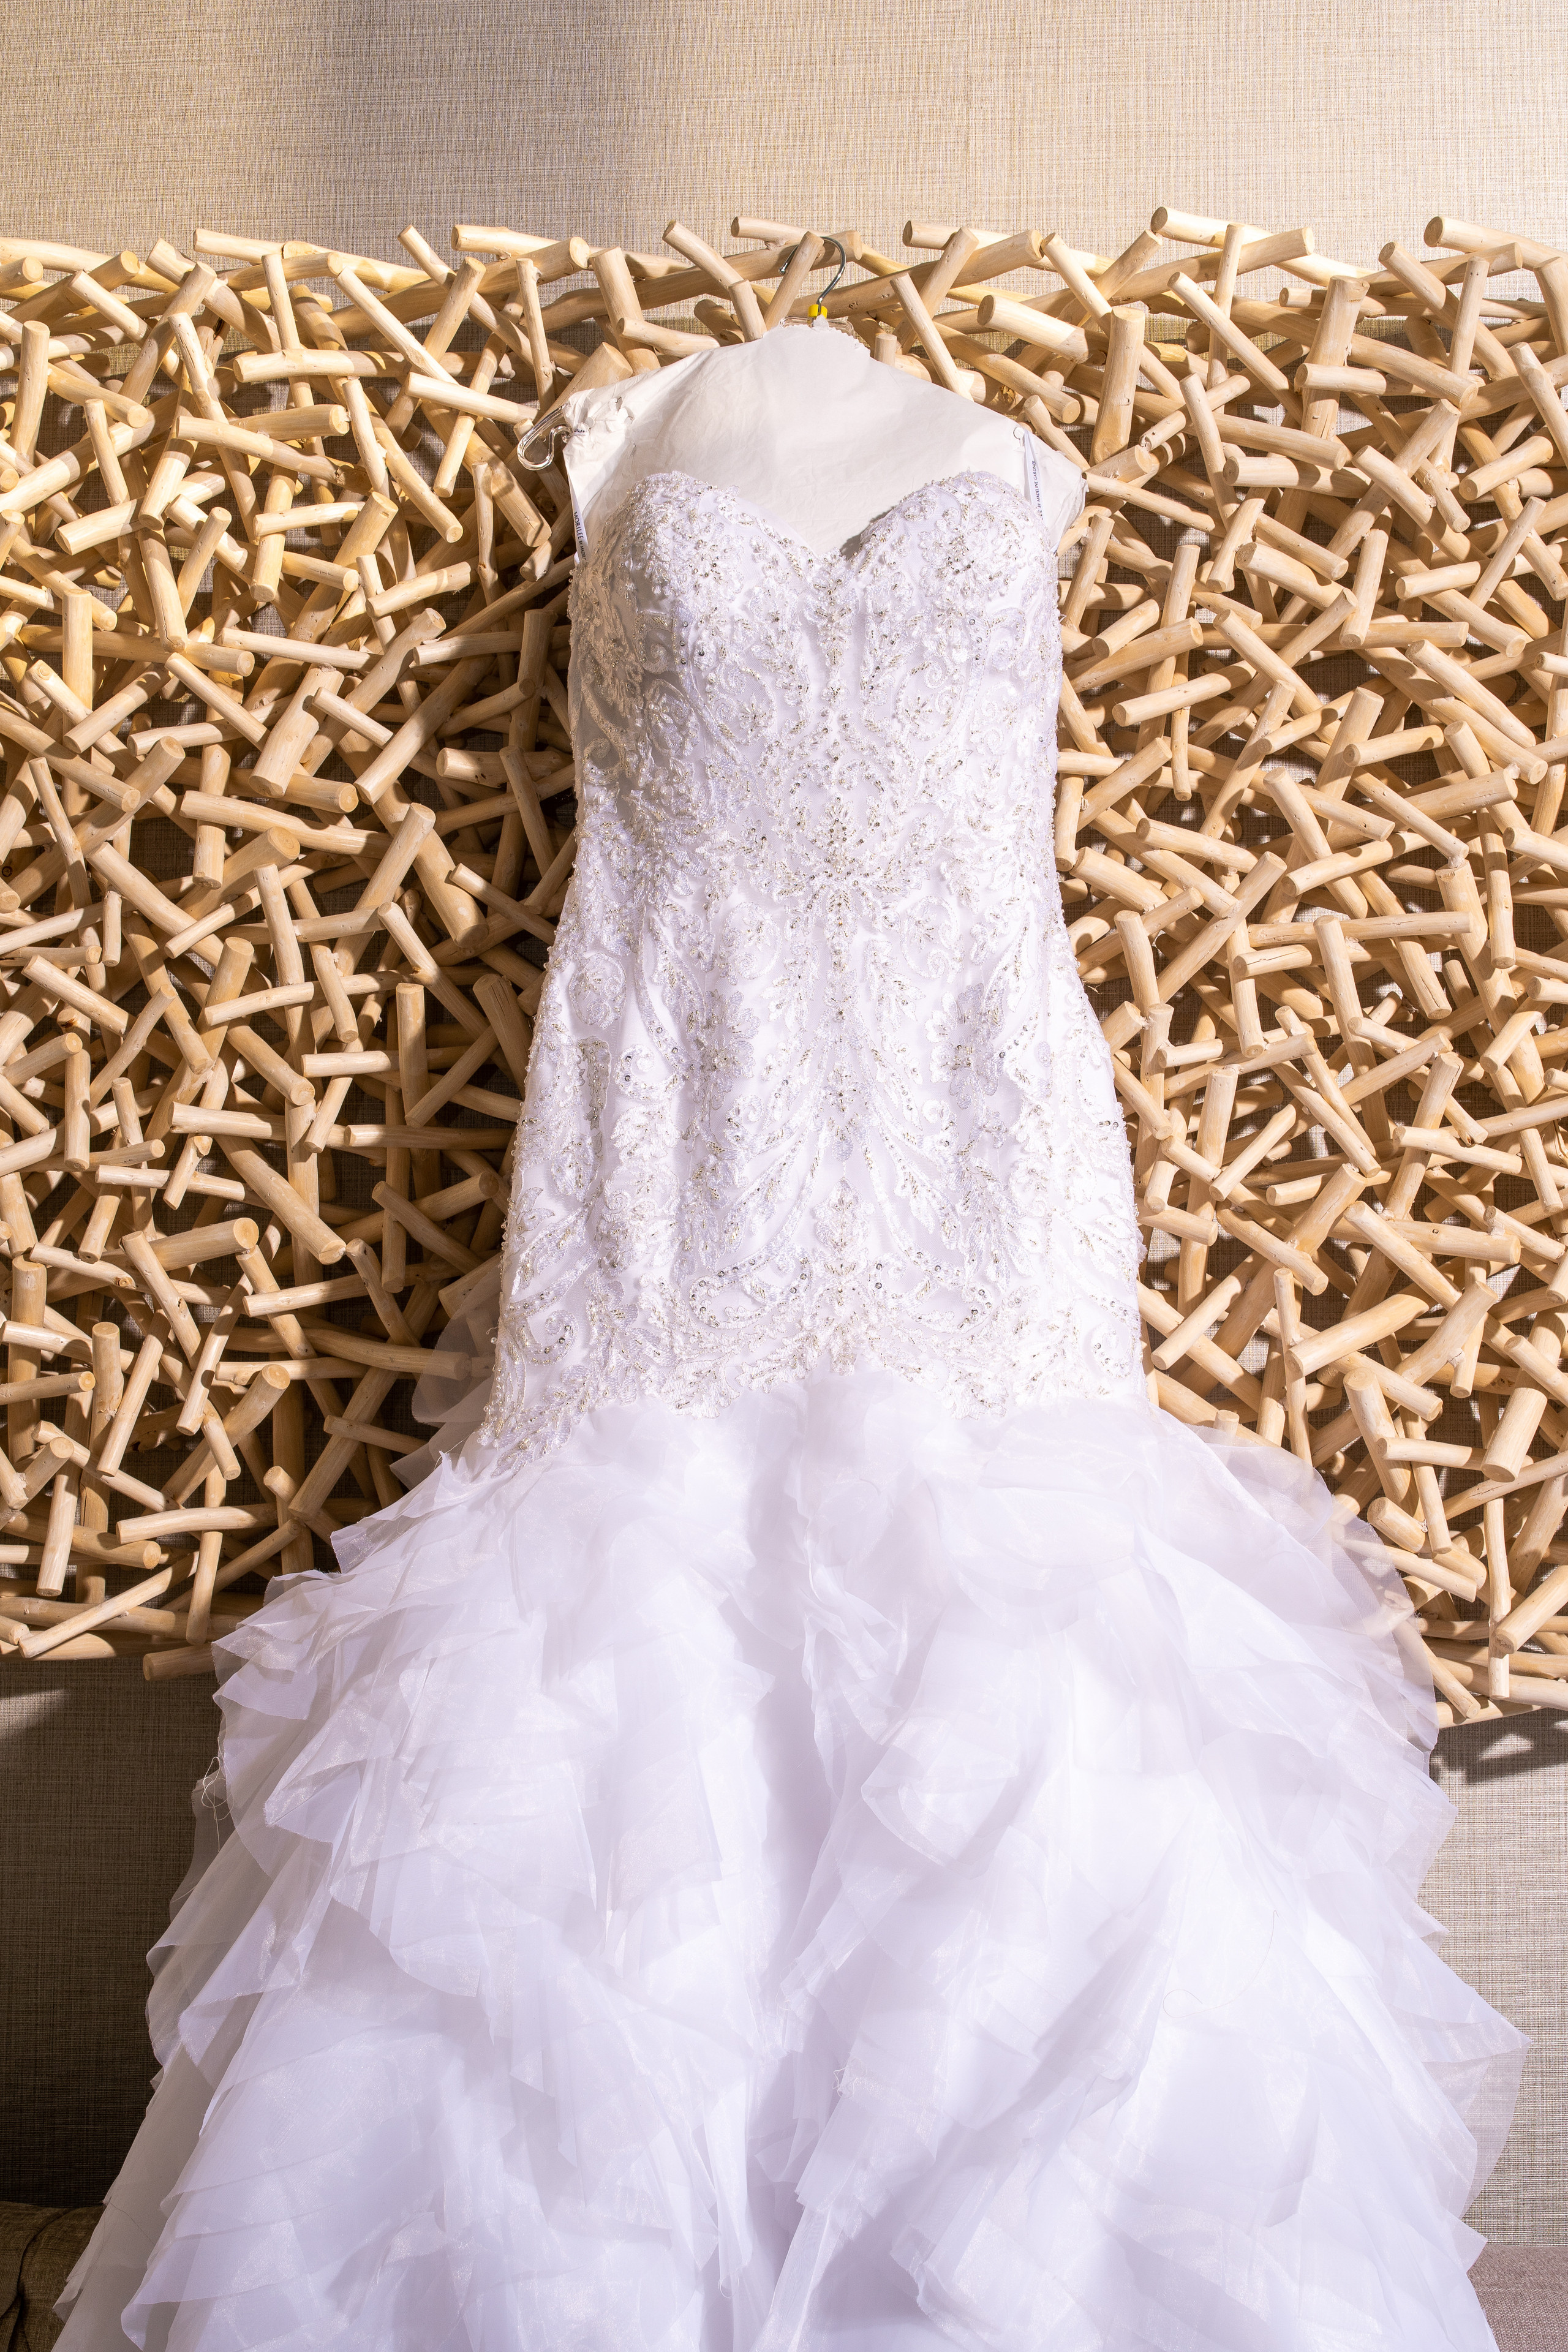 Bride's wedding dress before the wedding ceremony at the Hilton Main in Norfolk, Virginia.